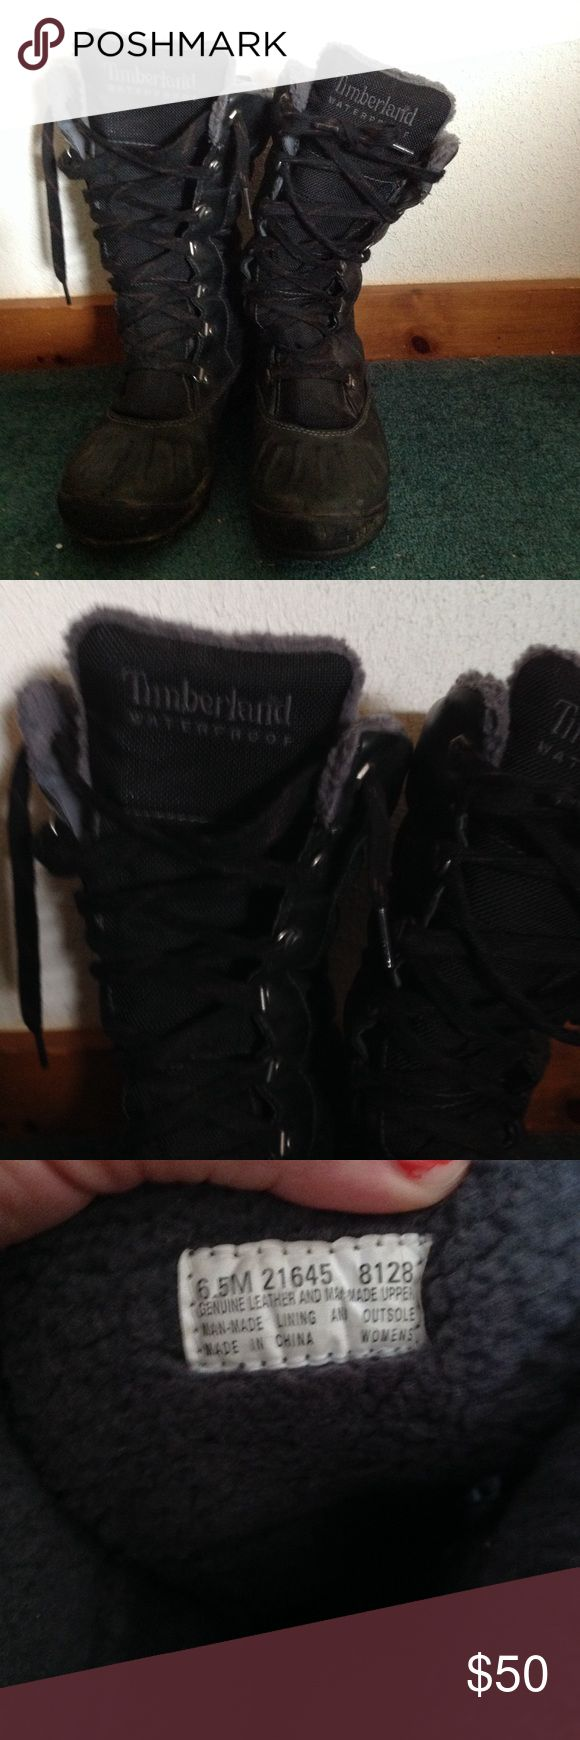 Timberland Boots These are AMAZING boots! Extremely warm and comfy inside. No flaws, just some winter dirt on them. Genuine leather. Timberland Shoes Winter & Rain Boots